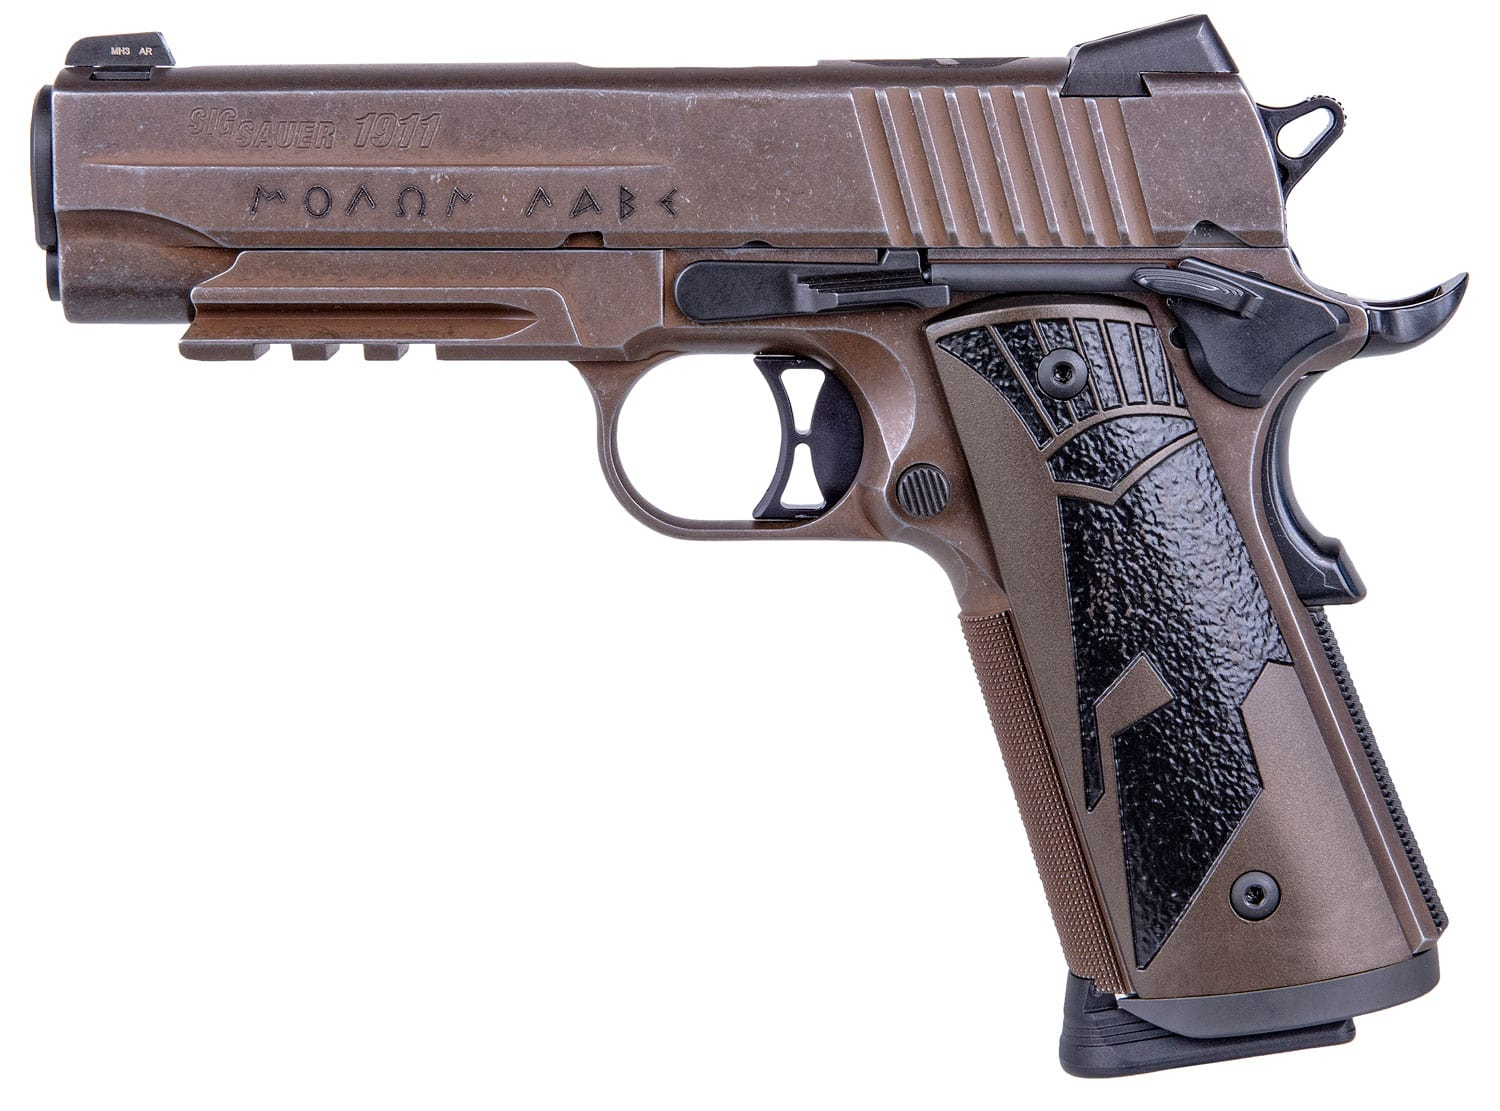 Image of SIG SAUER 1911 CARRY SPARTAN II